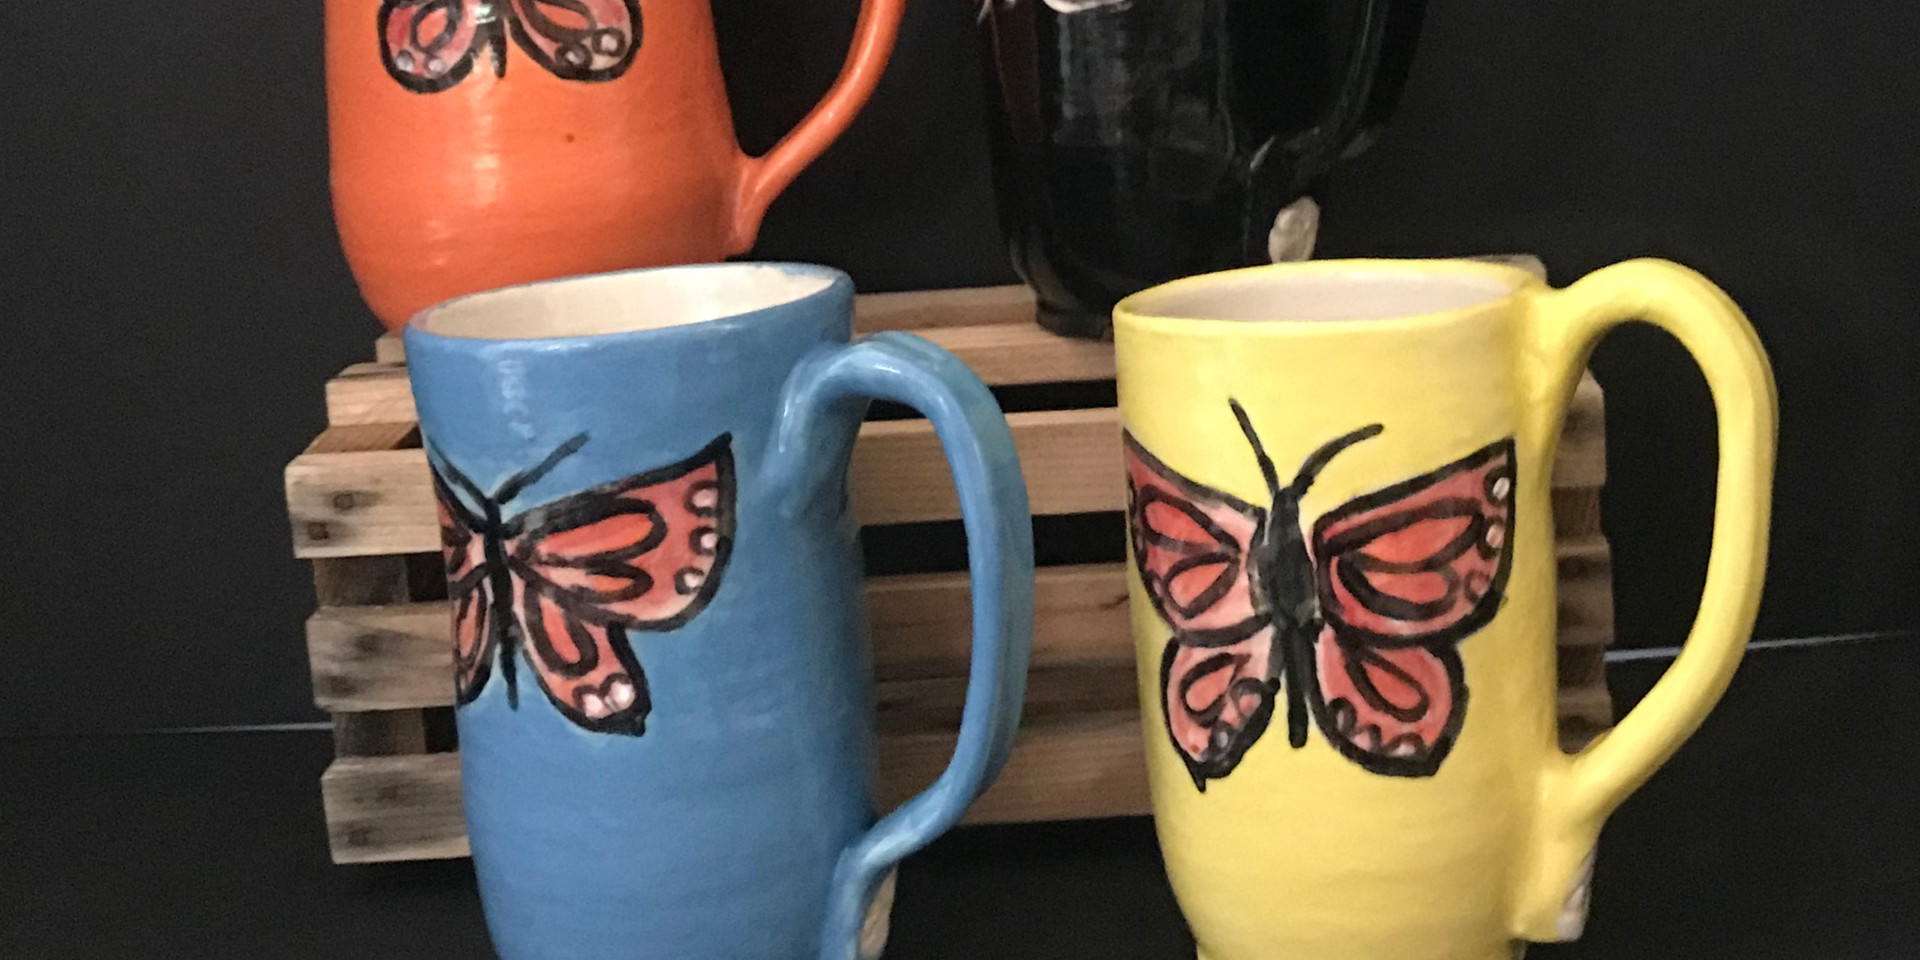 Butterfly Mugs, Commission 2018